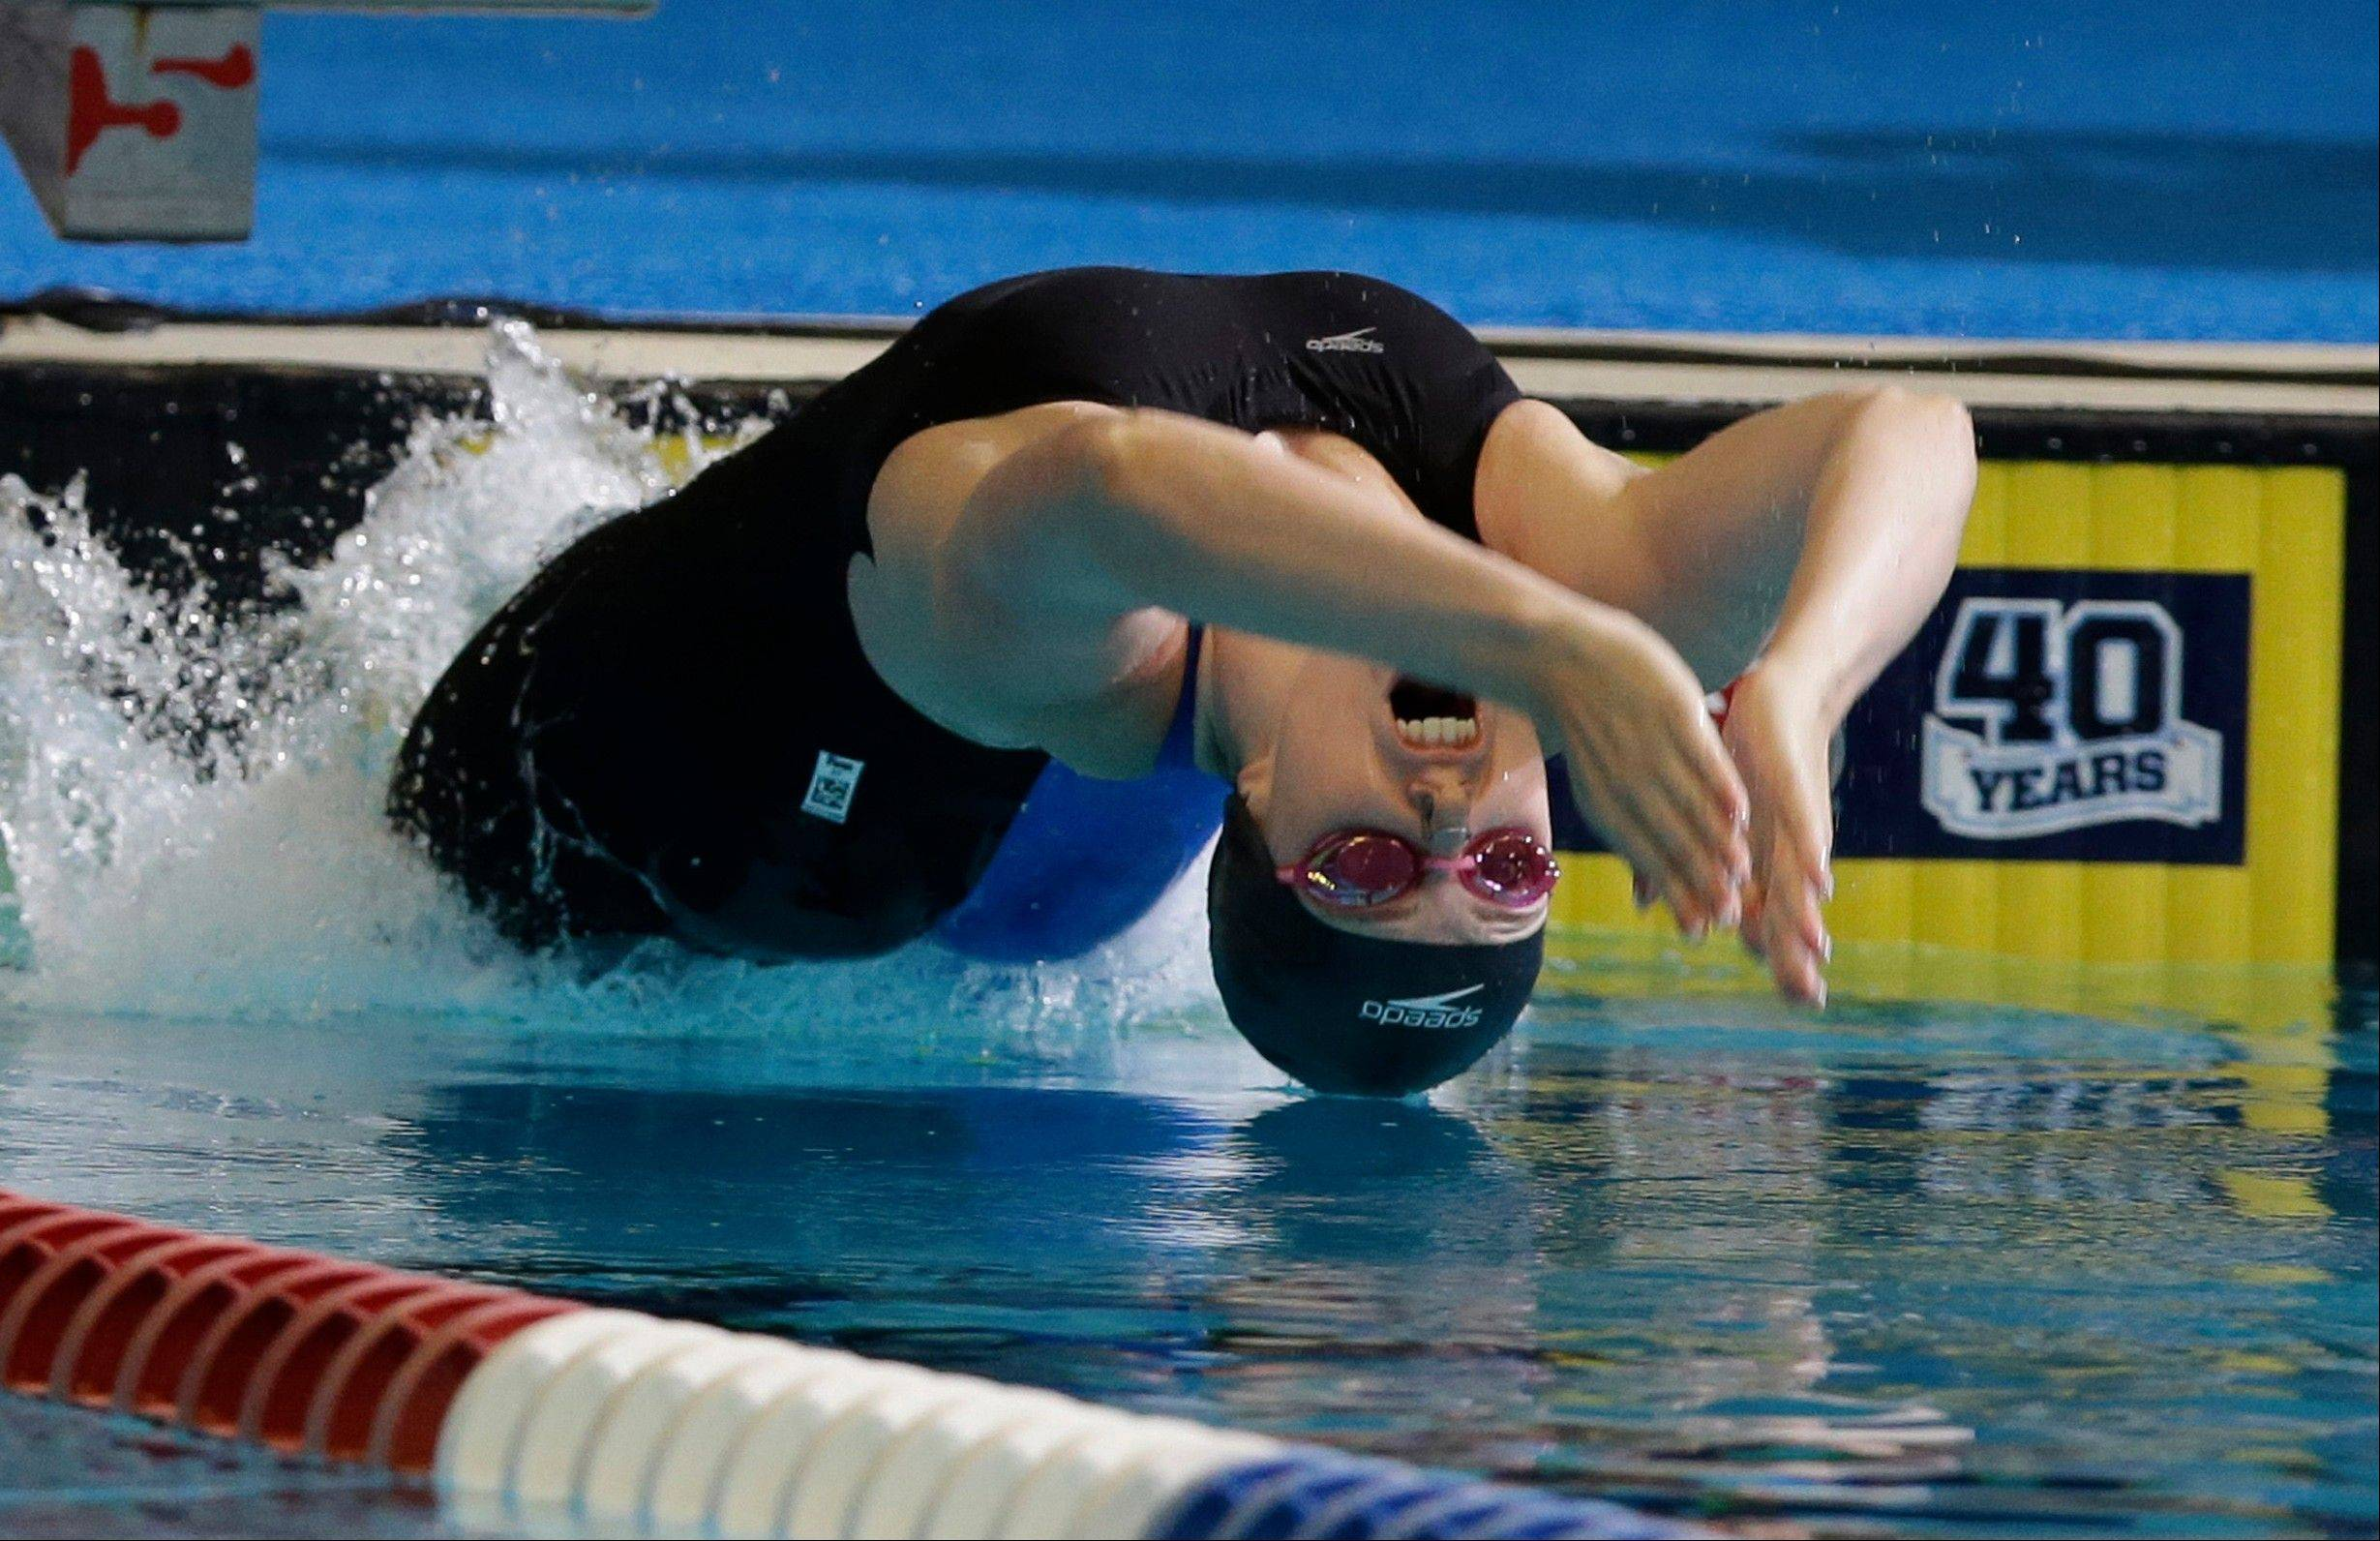 Missy Franklin, 18, starts the 50-meter backstroke Thursday during the U.S. National Championships in Indianapolis. Franklin finished second.